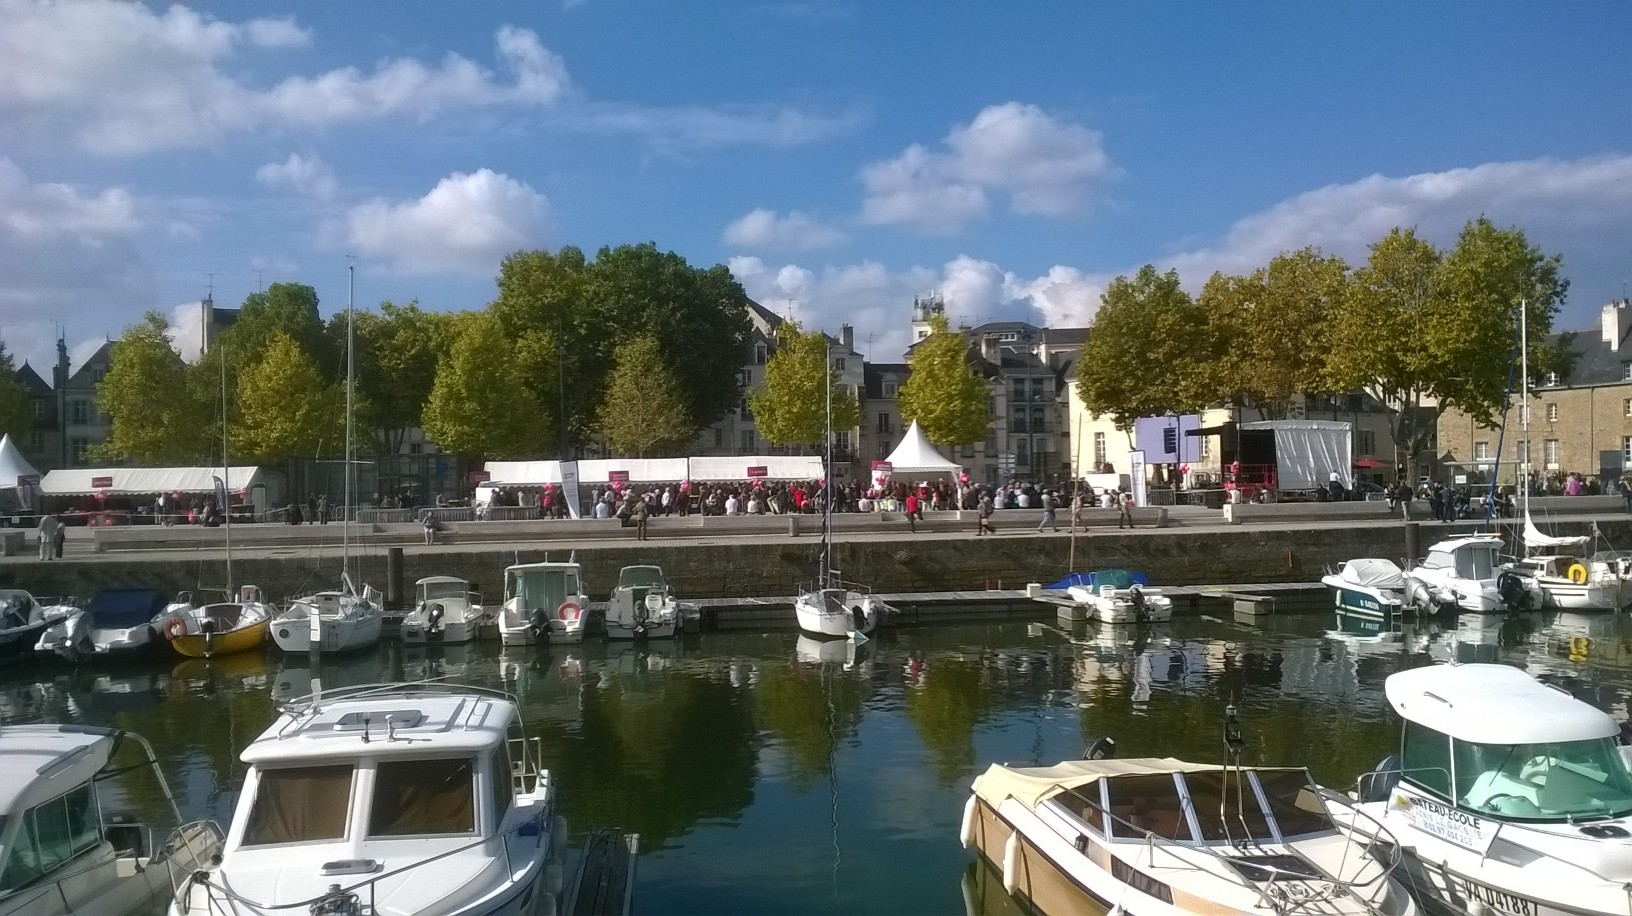 vannes-canal-le-port-over-from-parking-to-event-oct16